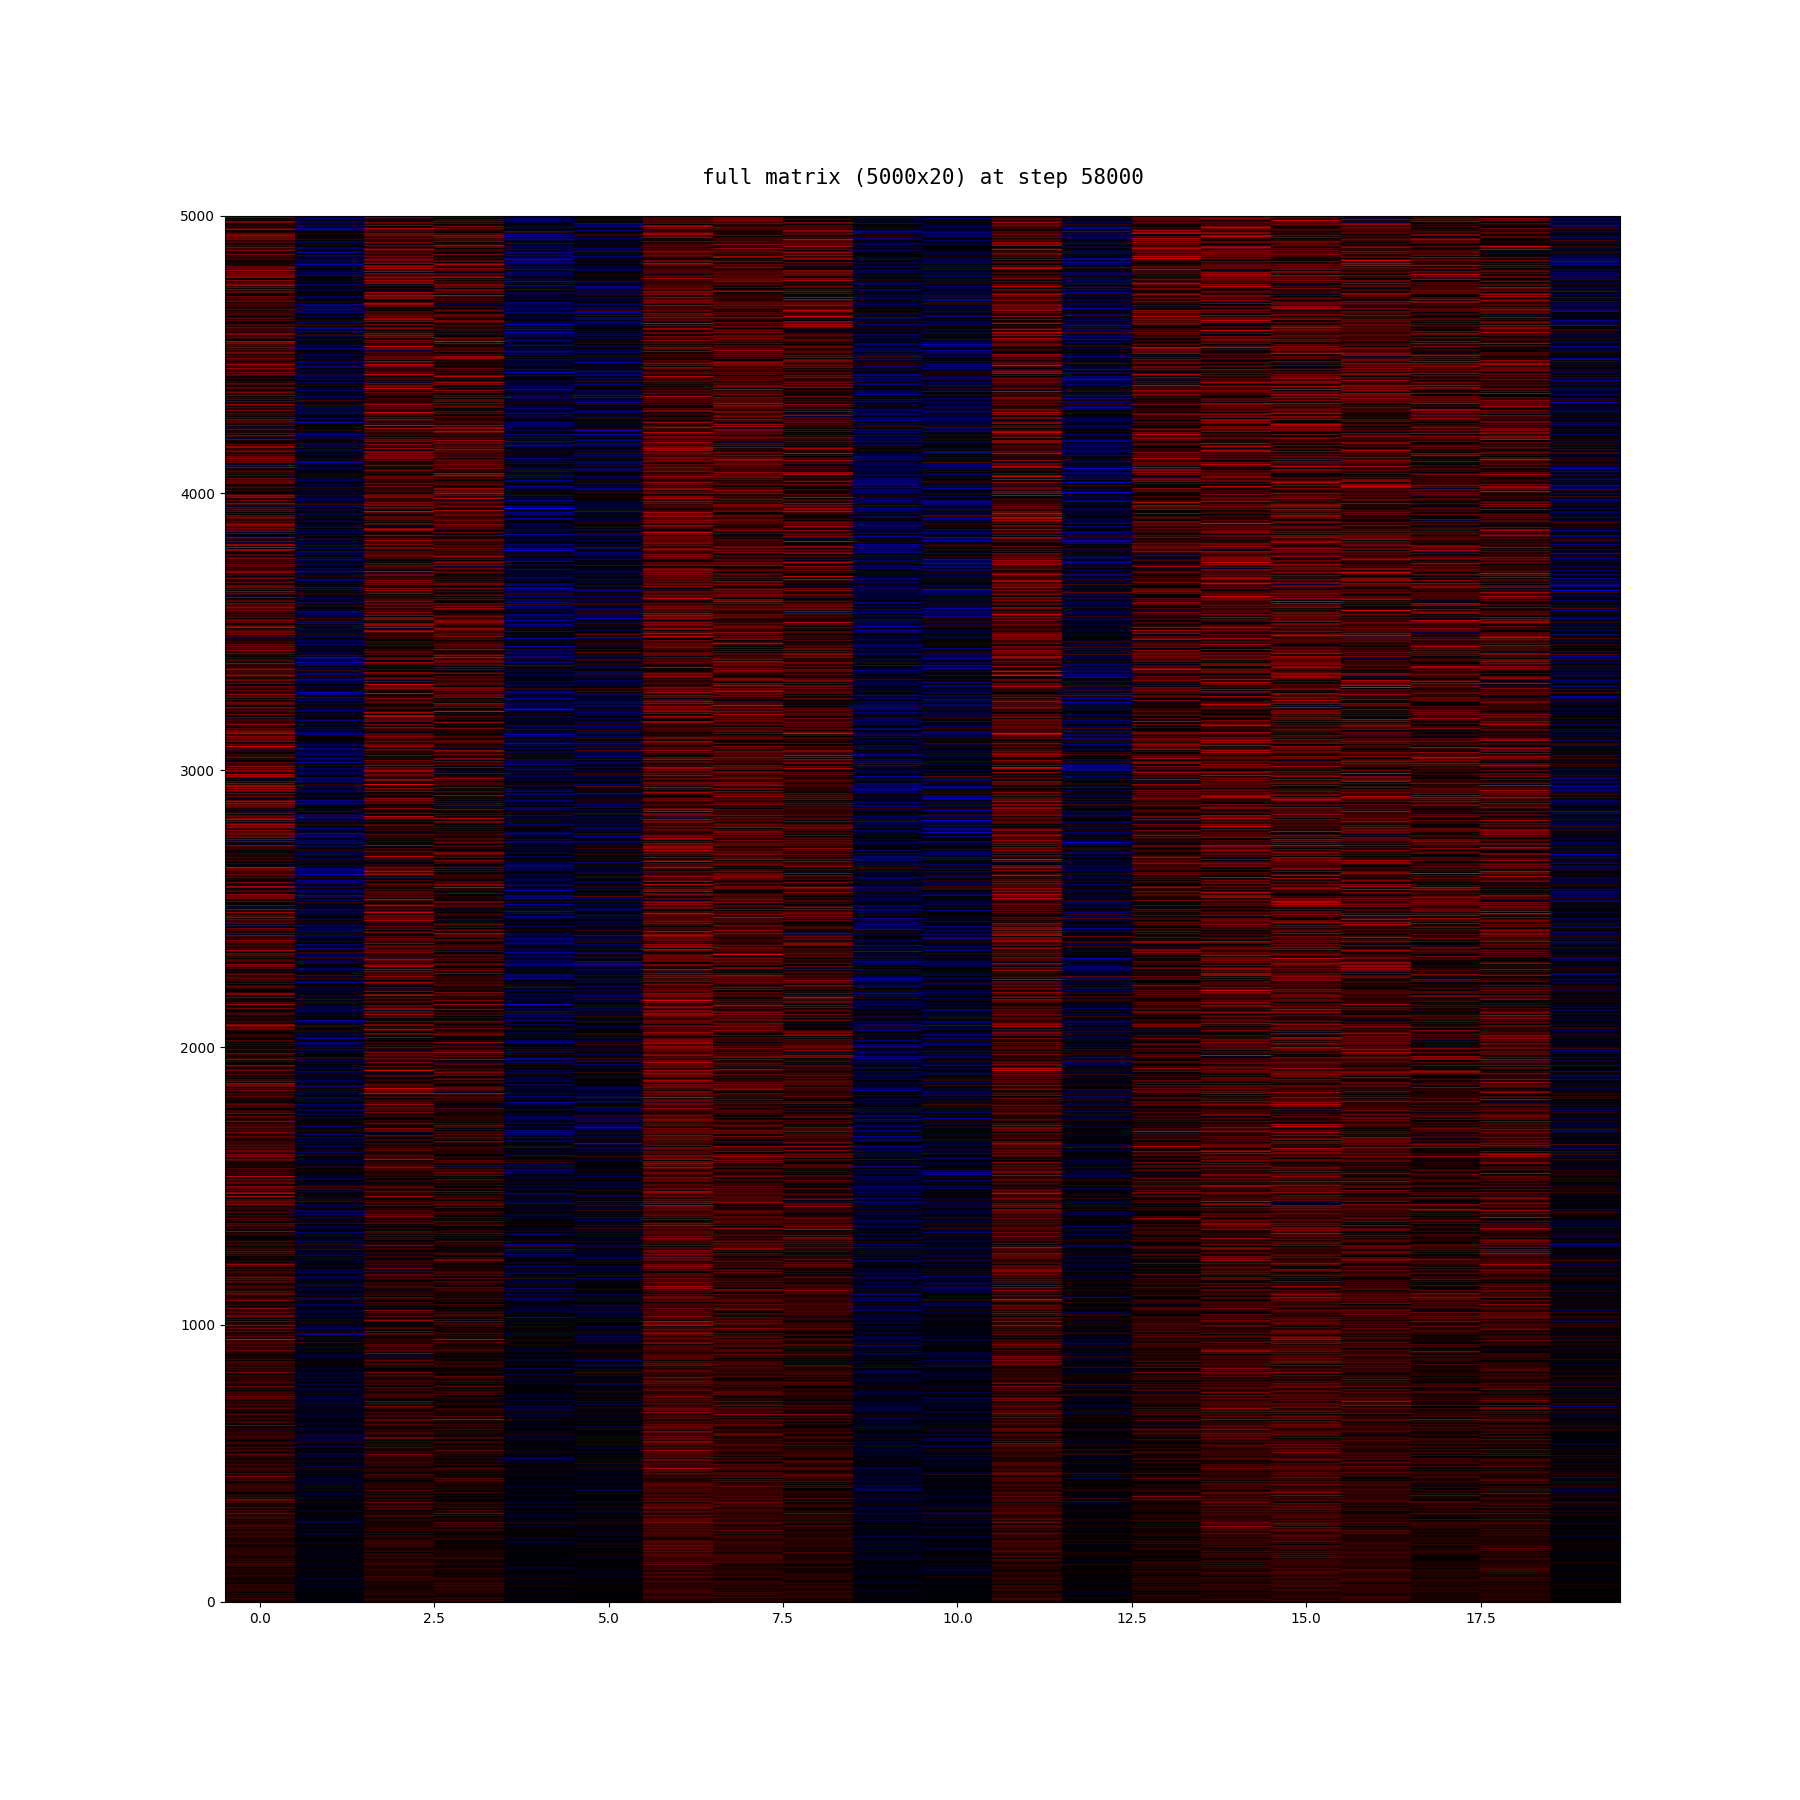 algoliterary_encounter/word2vec/plots/full-matrix/frankenstein-full-matrix-at-step_58000.png